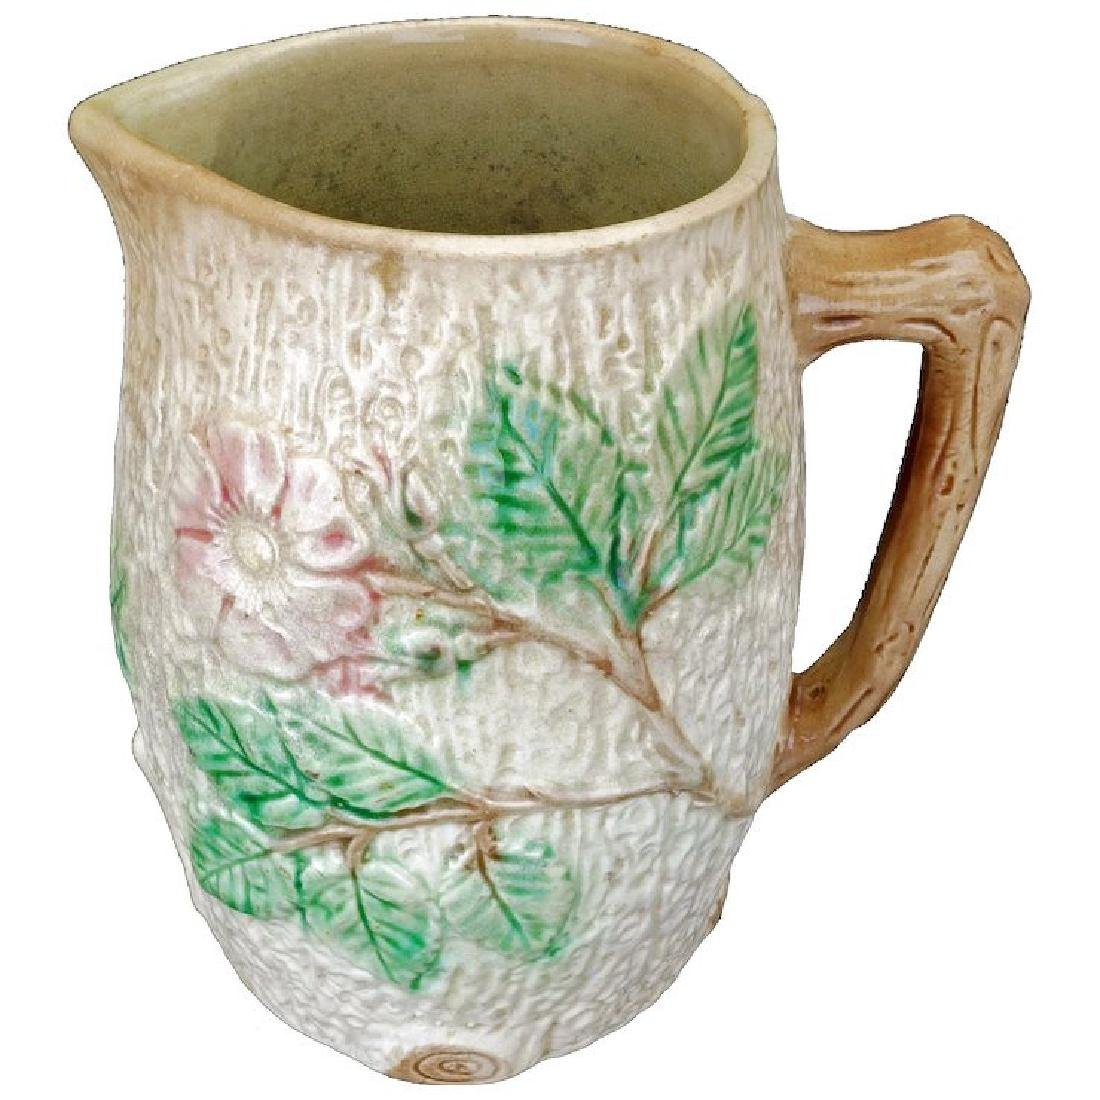 Ceramic majolica pitcher with apple blossom design